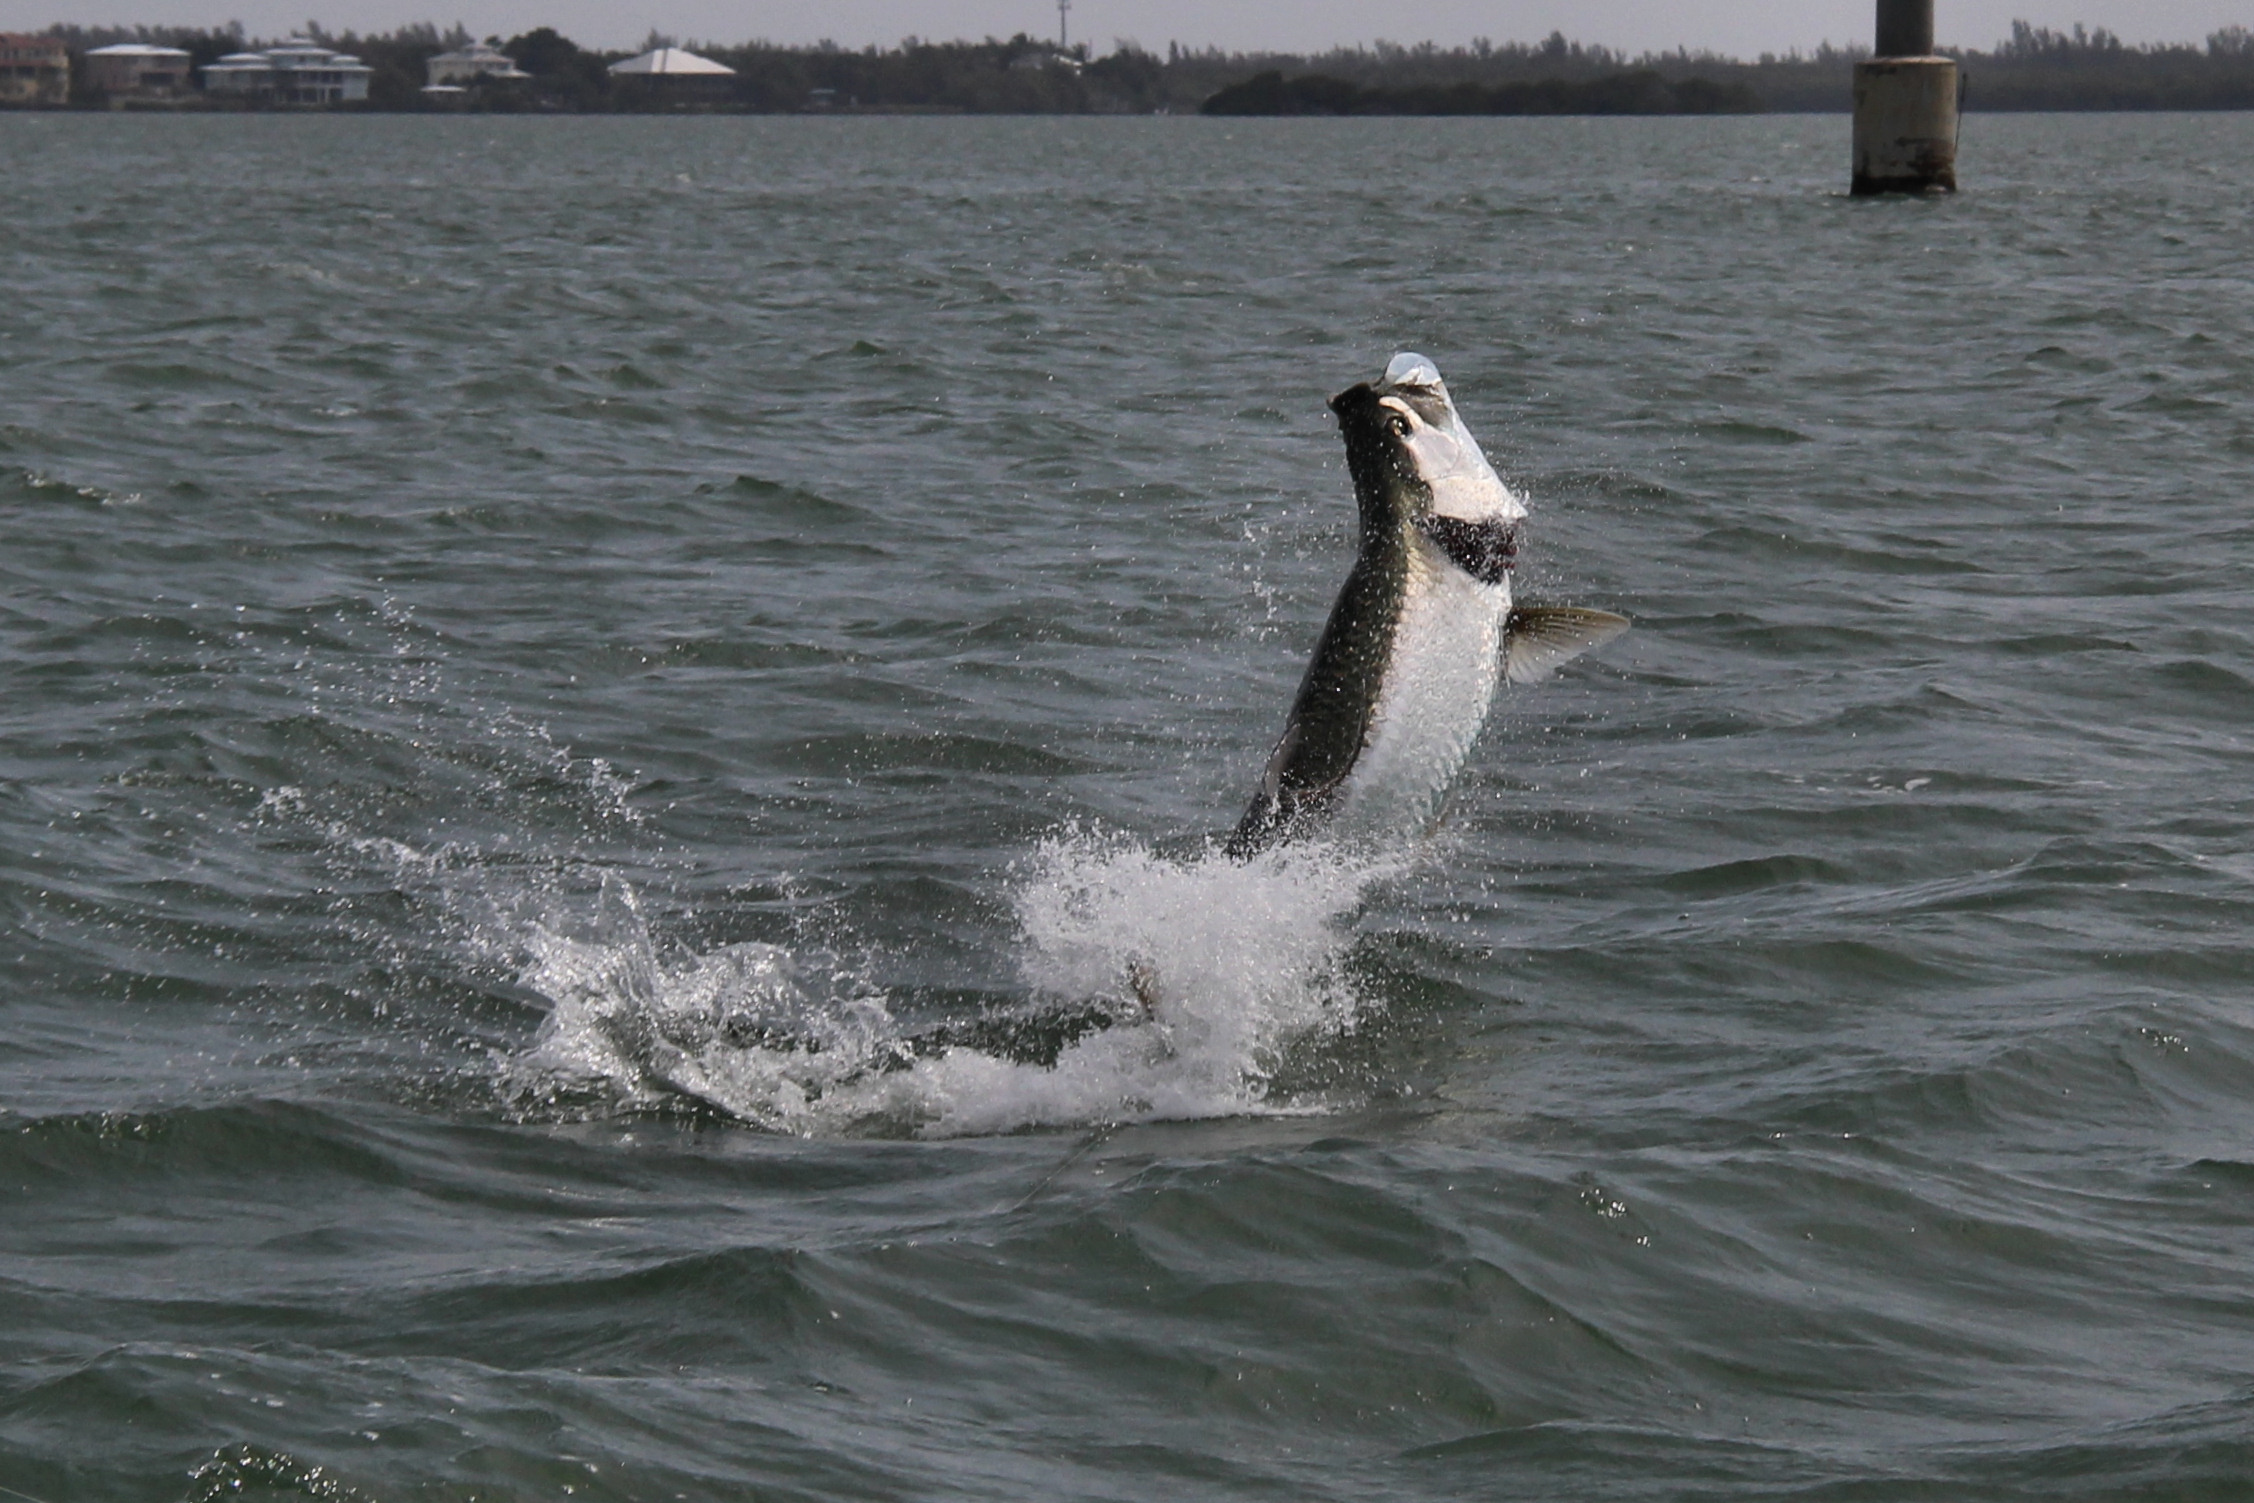 Pine island tarpon sanibel fishing charters for Tarpon fishing charters